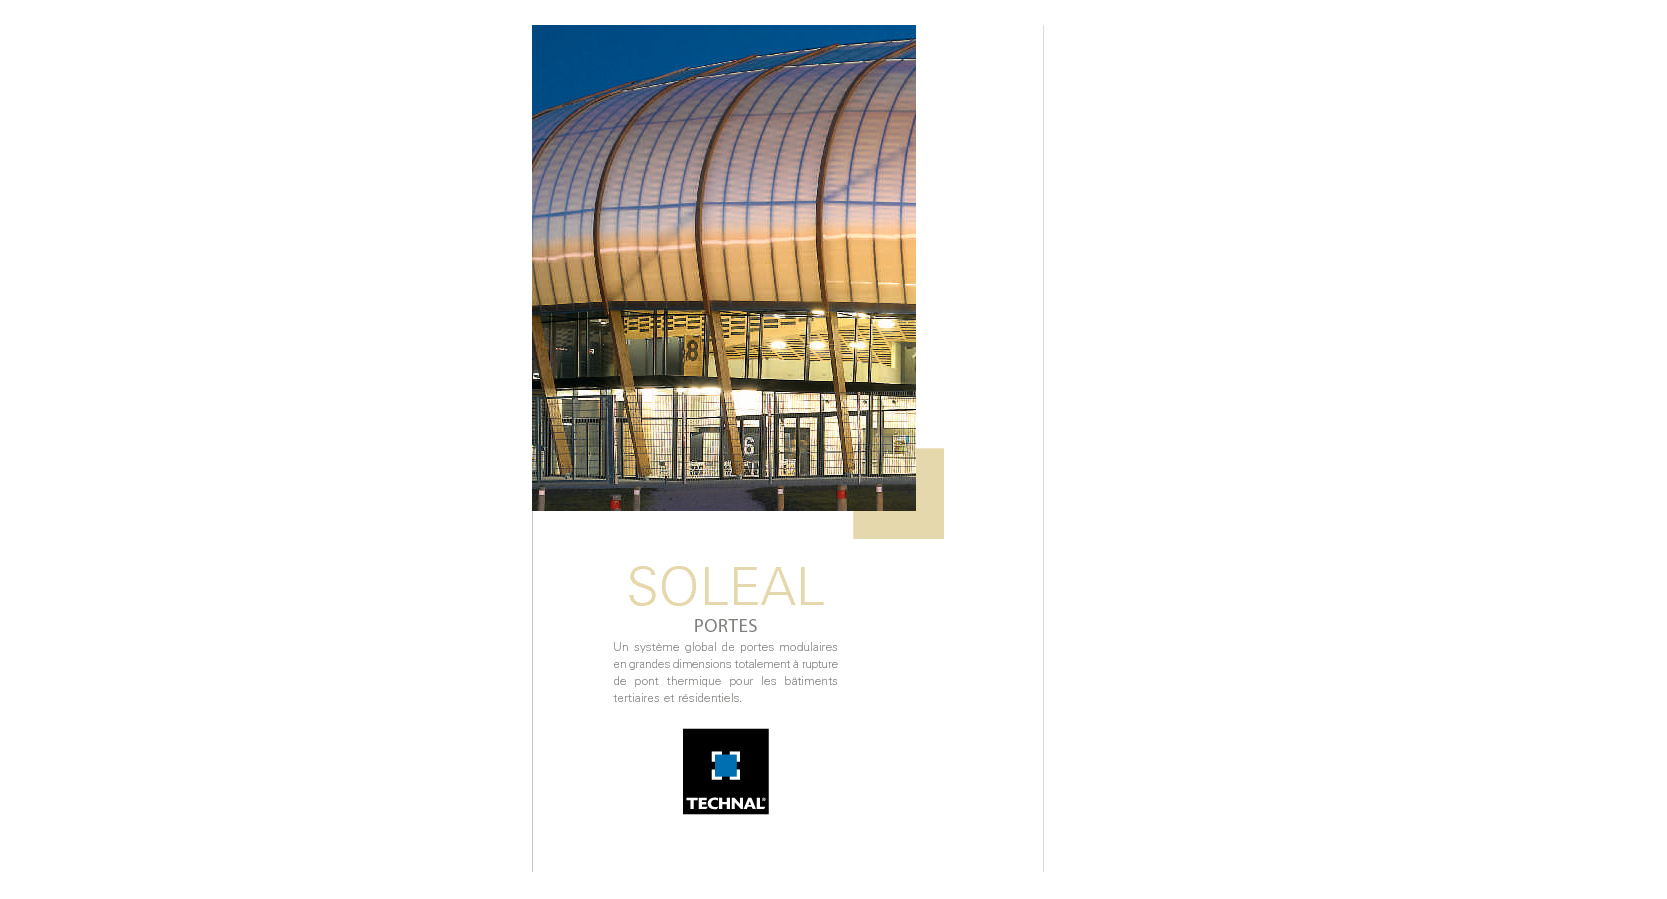 http://www.technal.fr/upload/Professionnels/Dumentation_commerciale/portes_soleal/Decouverte_porte_soleal.pdf